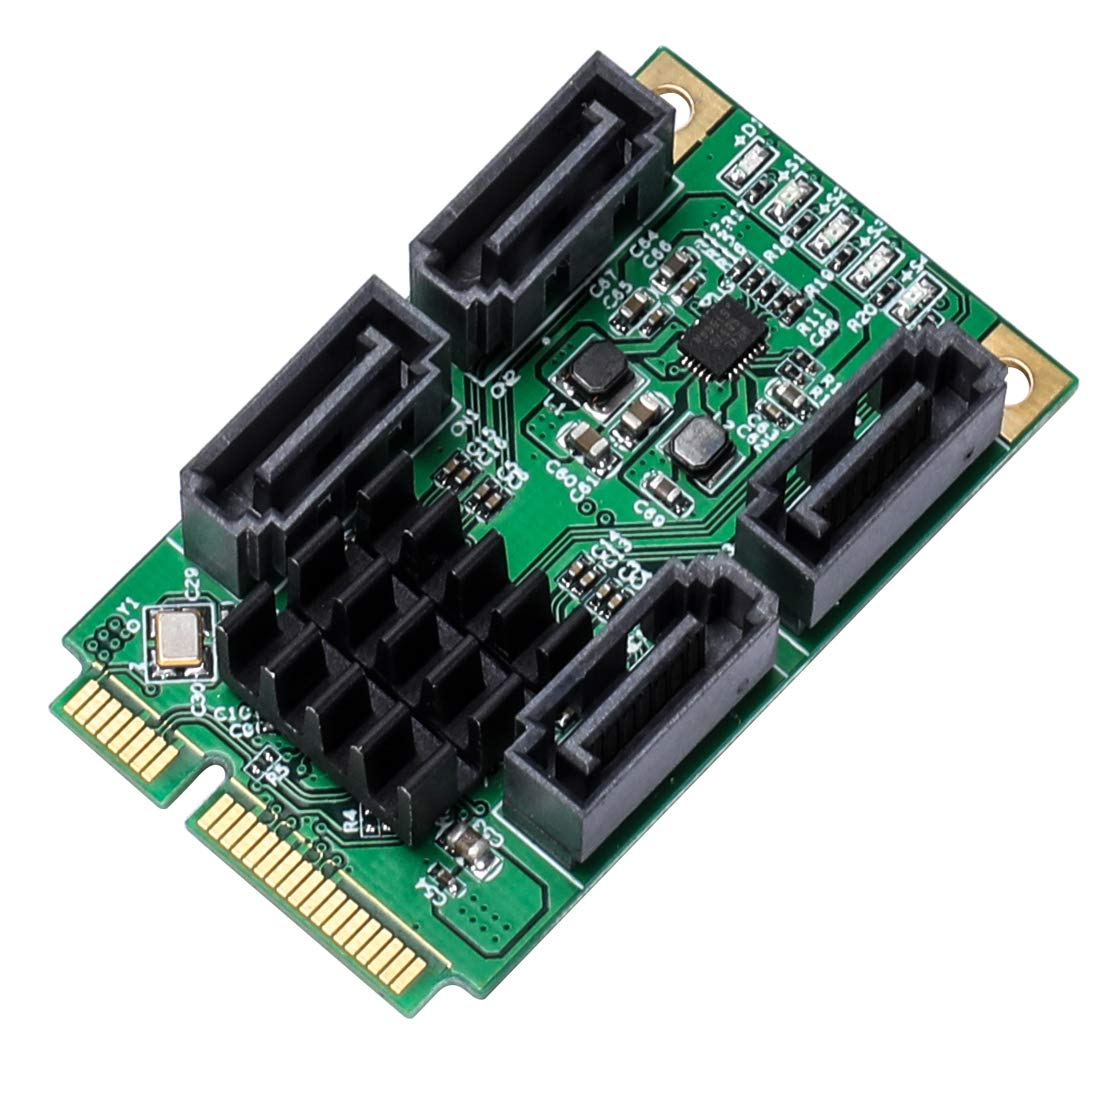 JMT 4 Ports SATA III 6Gbps Mini PCIE PCI-Express 88SE9215 Controller Card SATA 3.0 Mini PCI-E Hard Disk SSD Adapter Extension Card by JMT